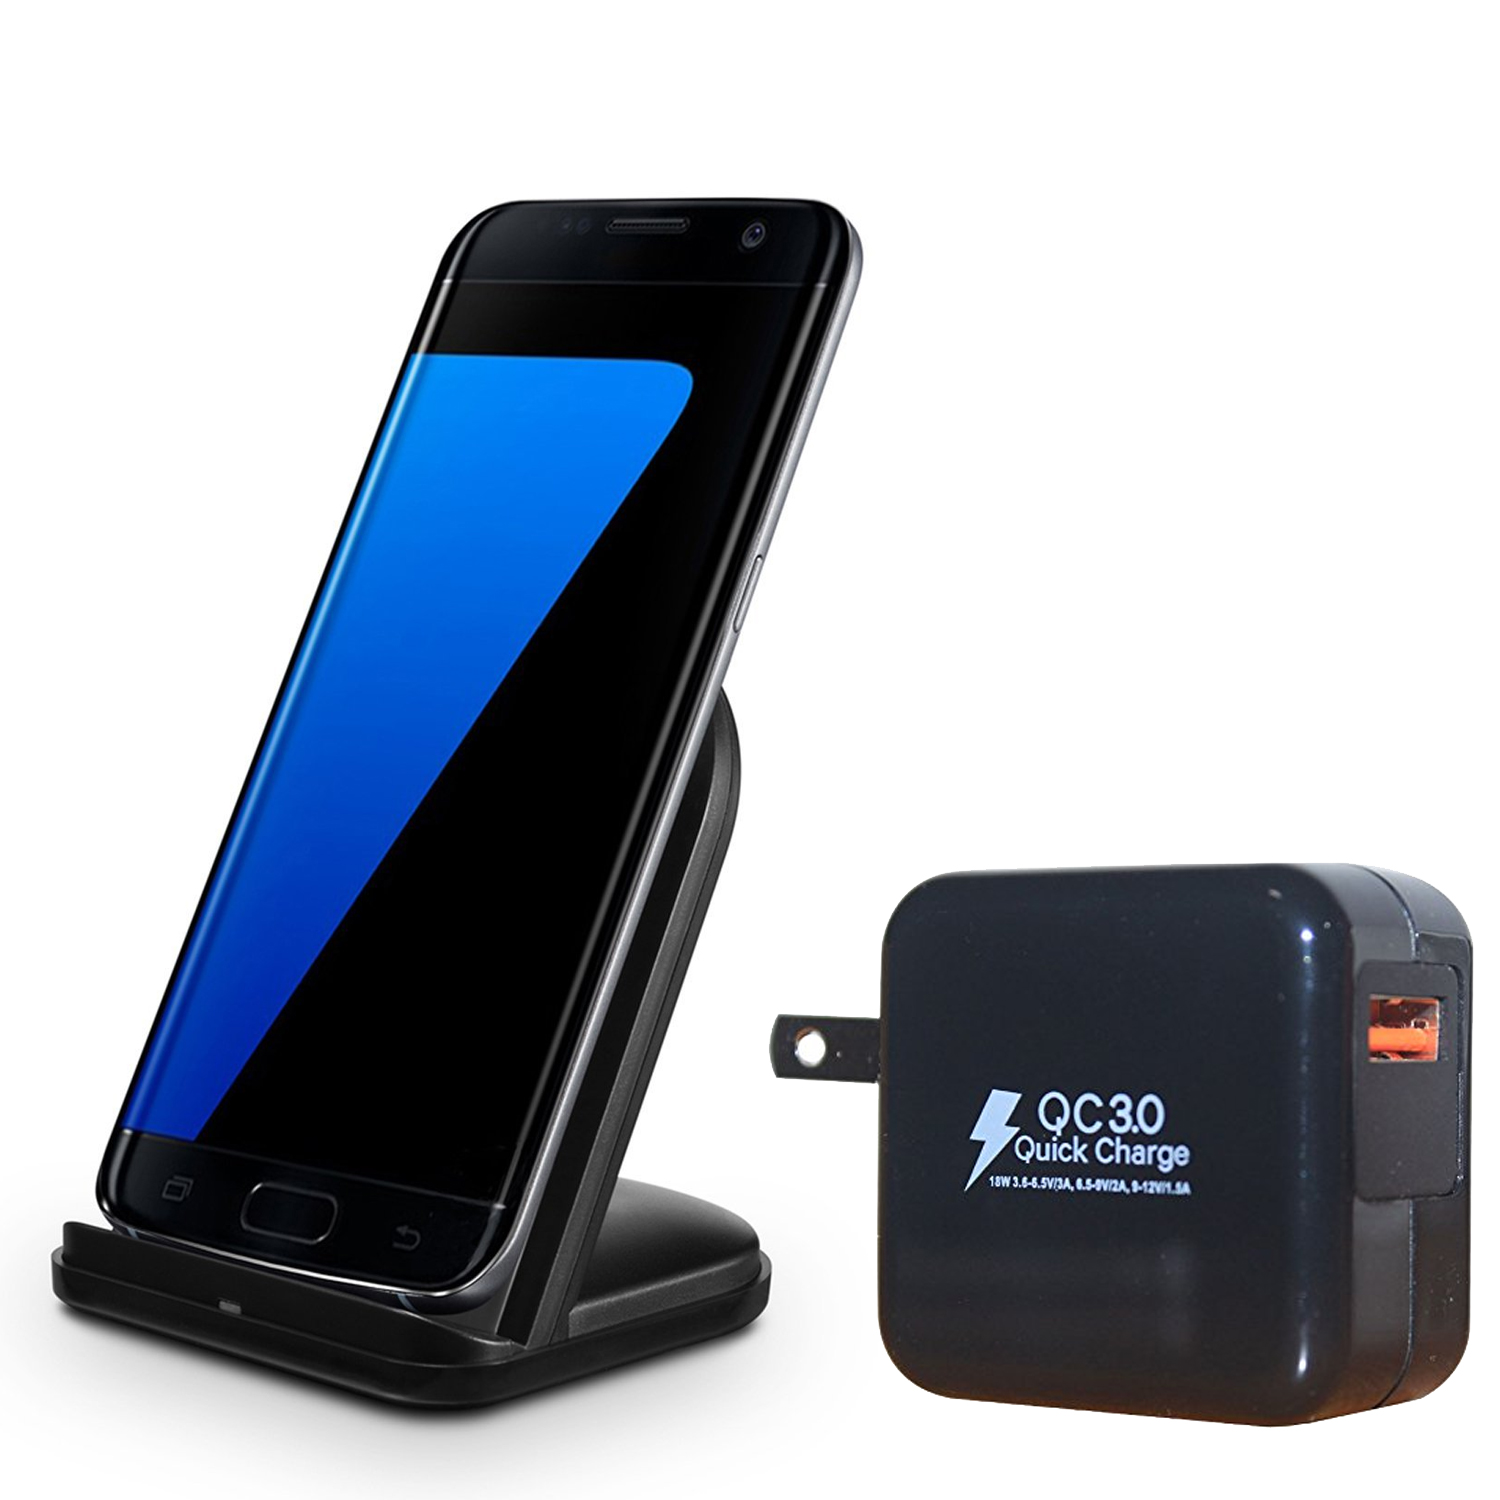 RNDs Fast Charge Wireless Charging Stand for Samsung Galaxy (S8, S8, Plus, S7, S6), Note (5, 8), Microsoft Lumia and other QI Enabled Devices (QC3.0 Compatible Quick Charger included) (black)